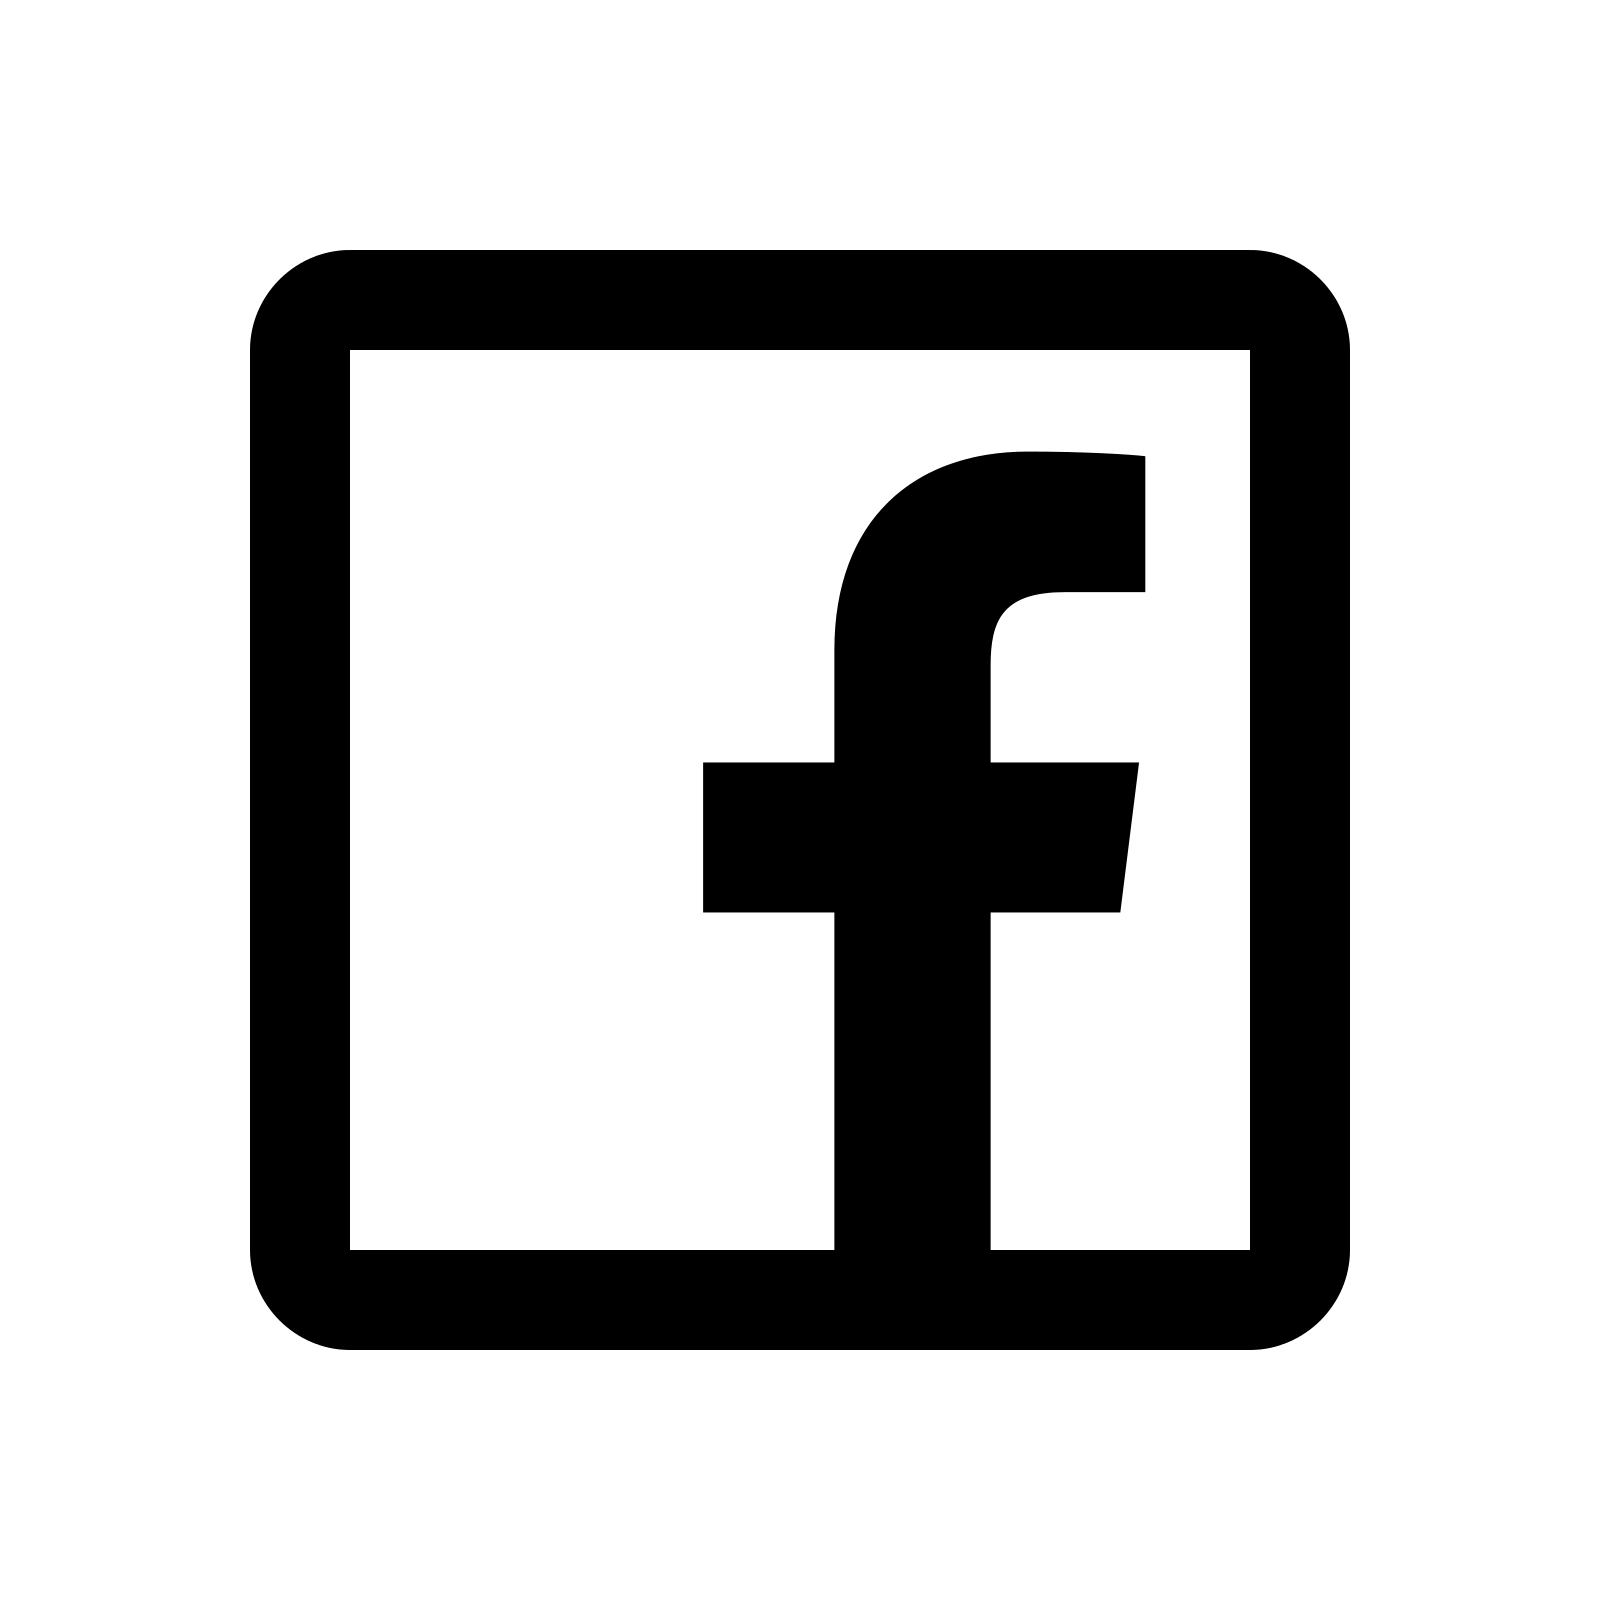 Logo Computer Facebook Icon Icons Free Clipart HD PNG Image